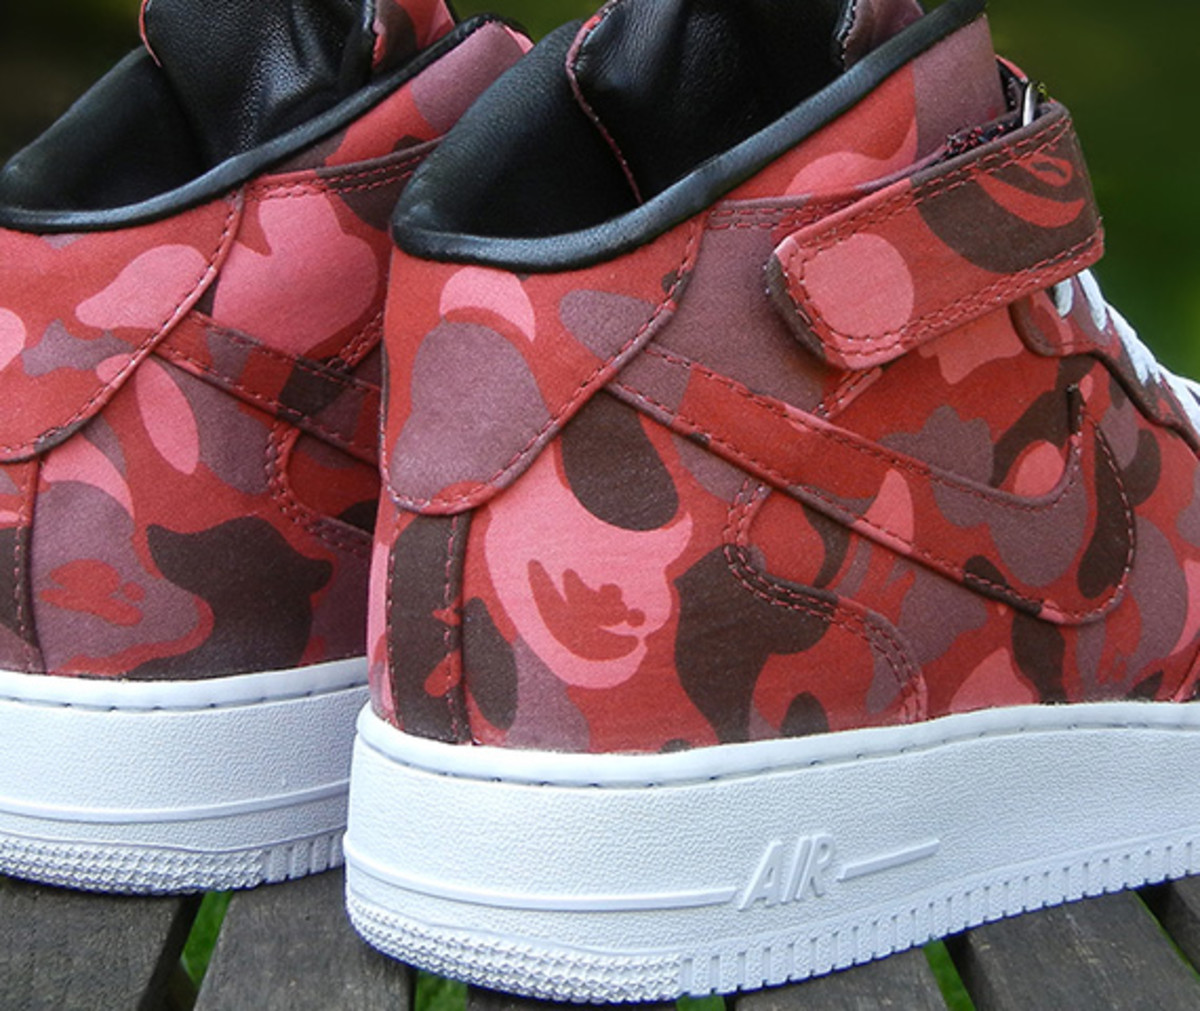 nike-air-force-1-bape-1st-camo-incomparable-custom-by-jbf-customs-04